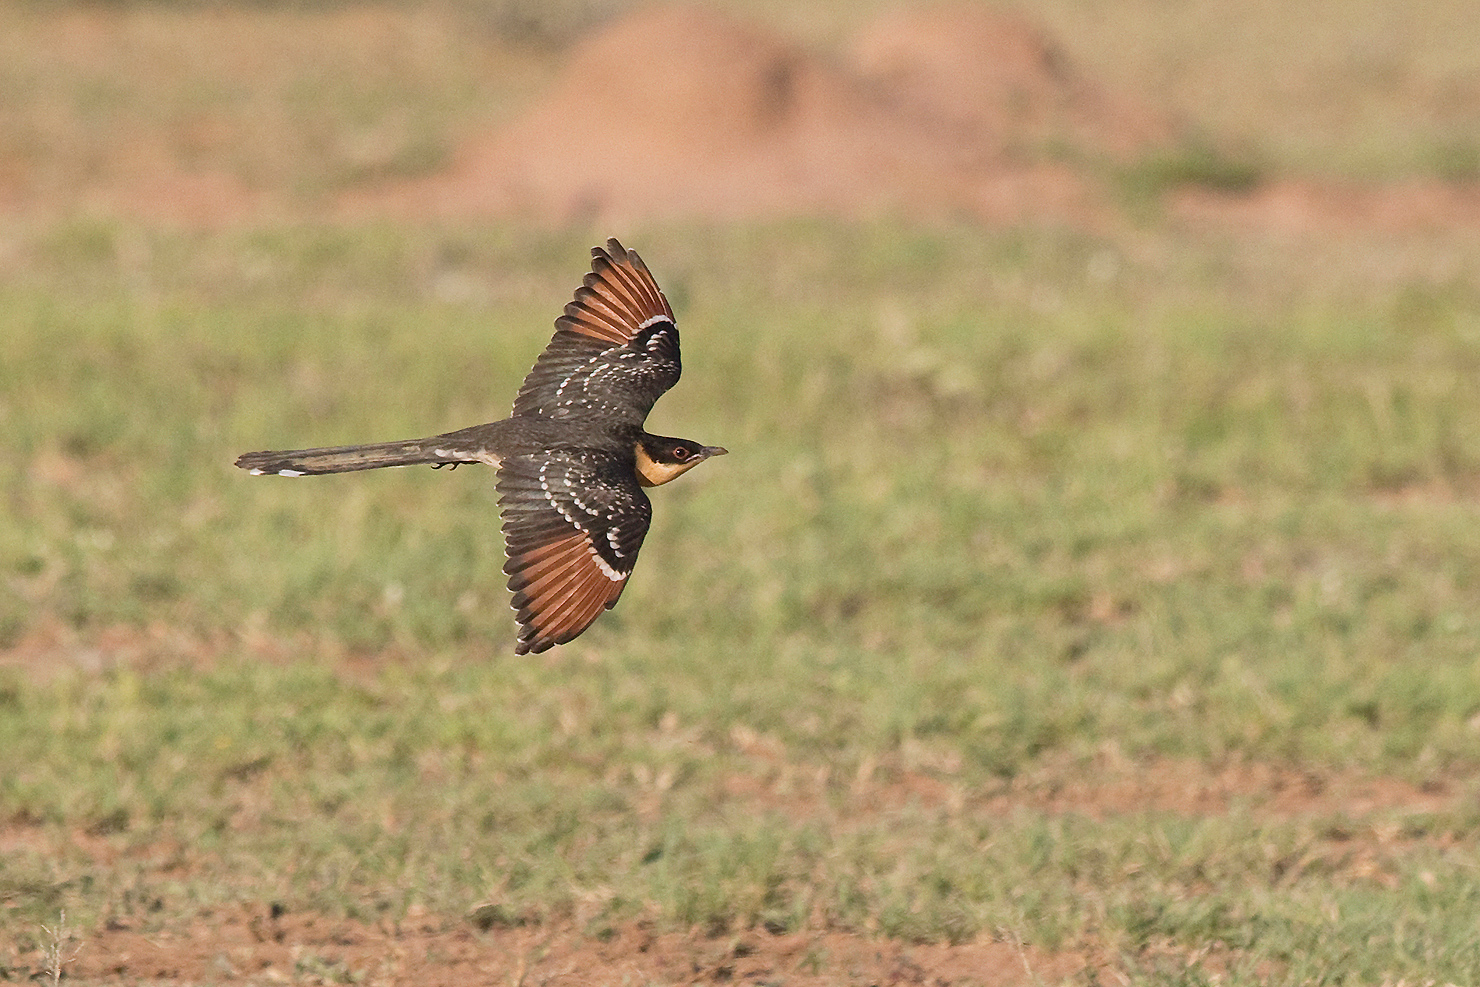 Great Spotted Cuckoo / Kgomo Kgomo, South Africa / 13 February 2016